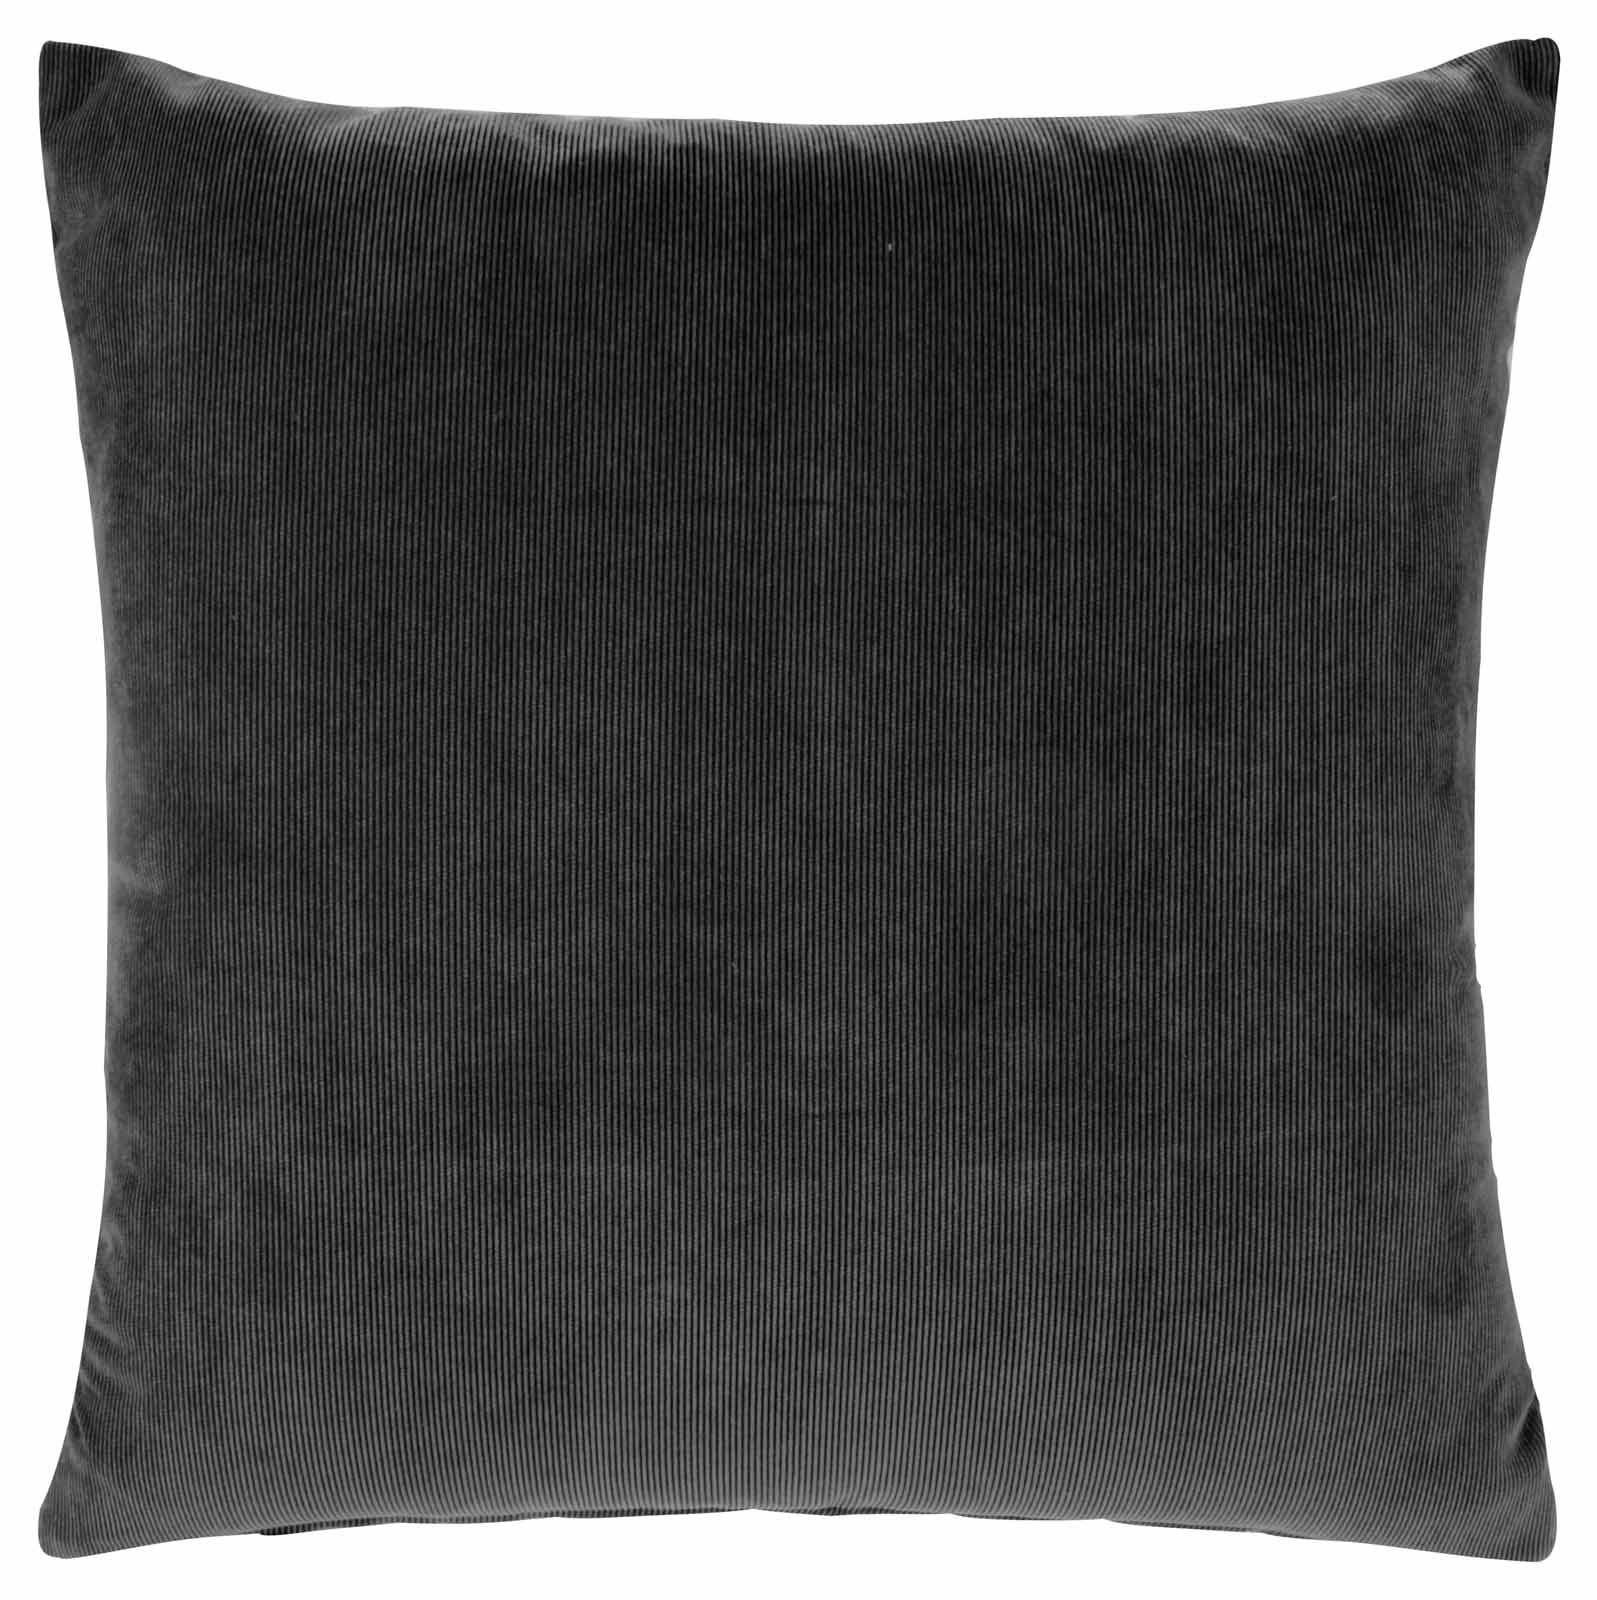 Luxury cord cushion cover 18 x 18 soft feel decorative for Luxury decorative throw pillows